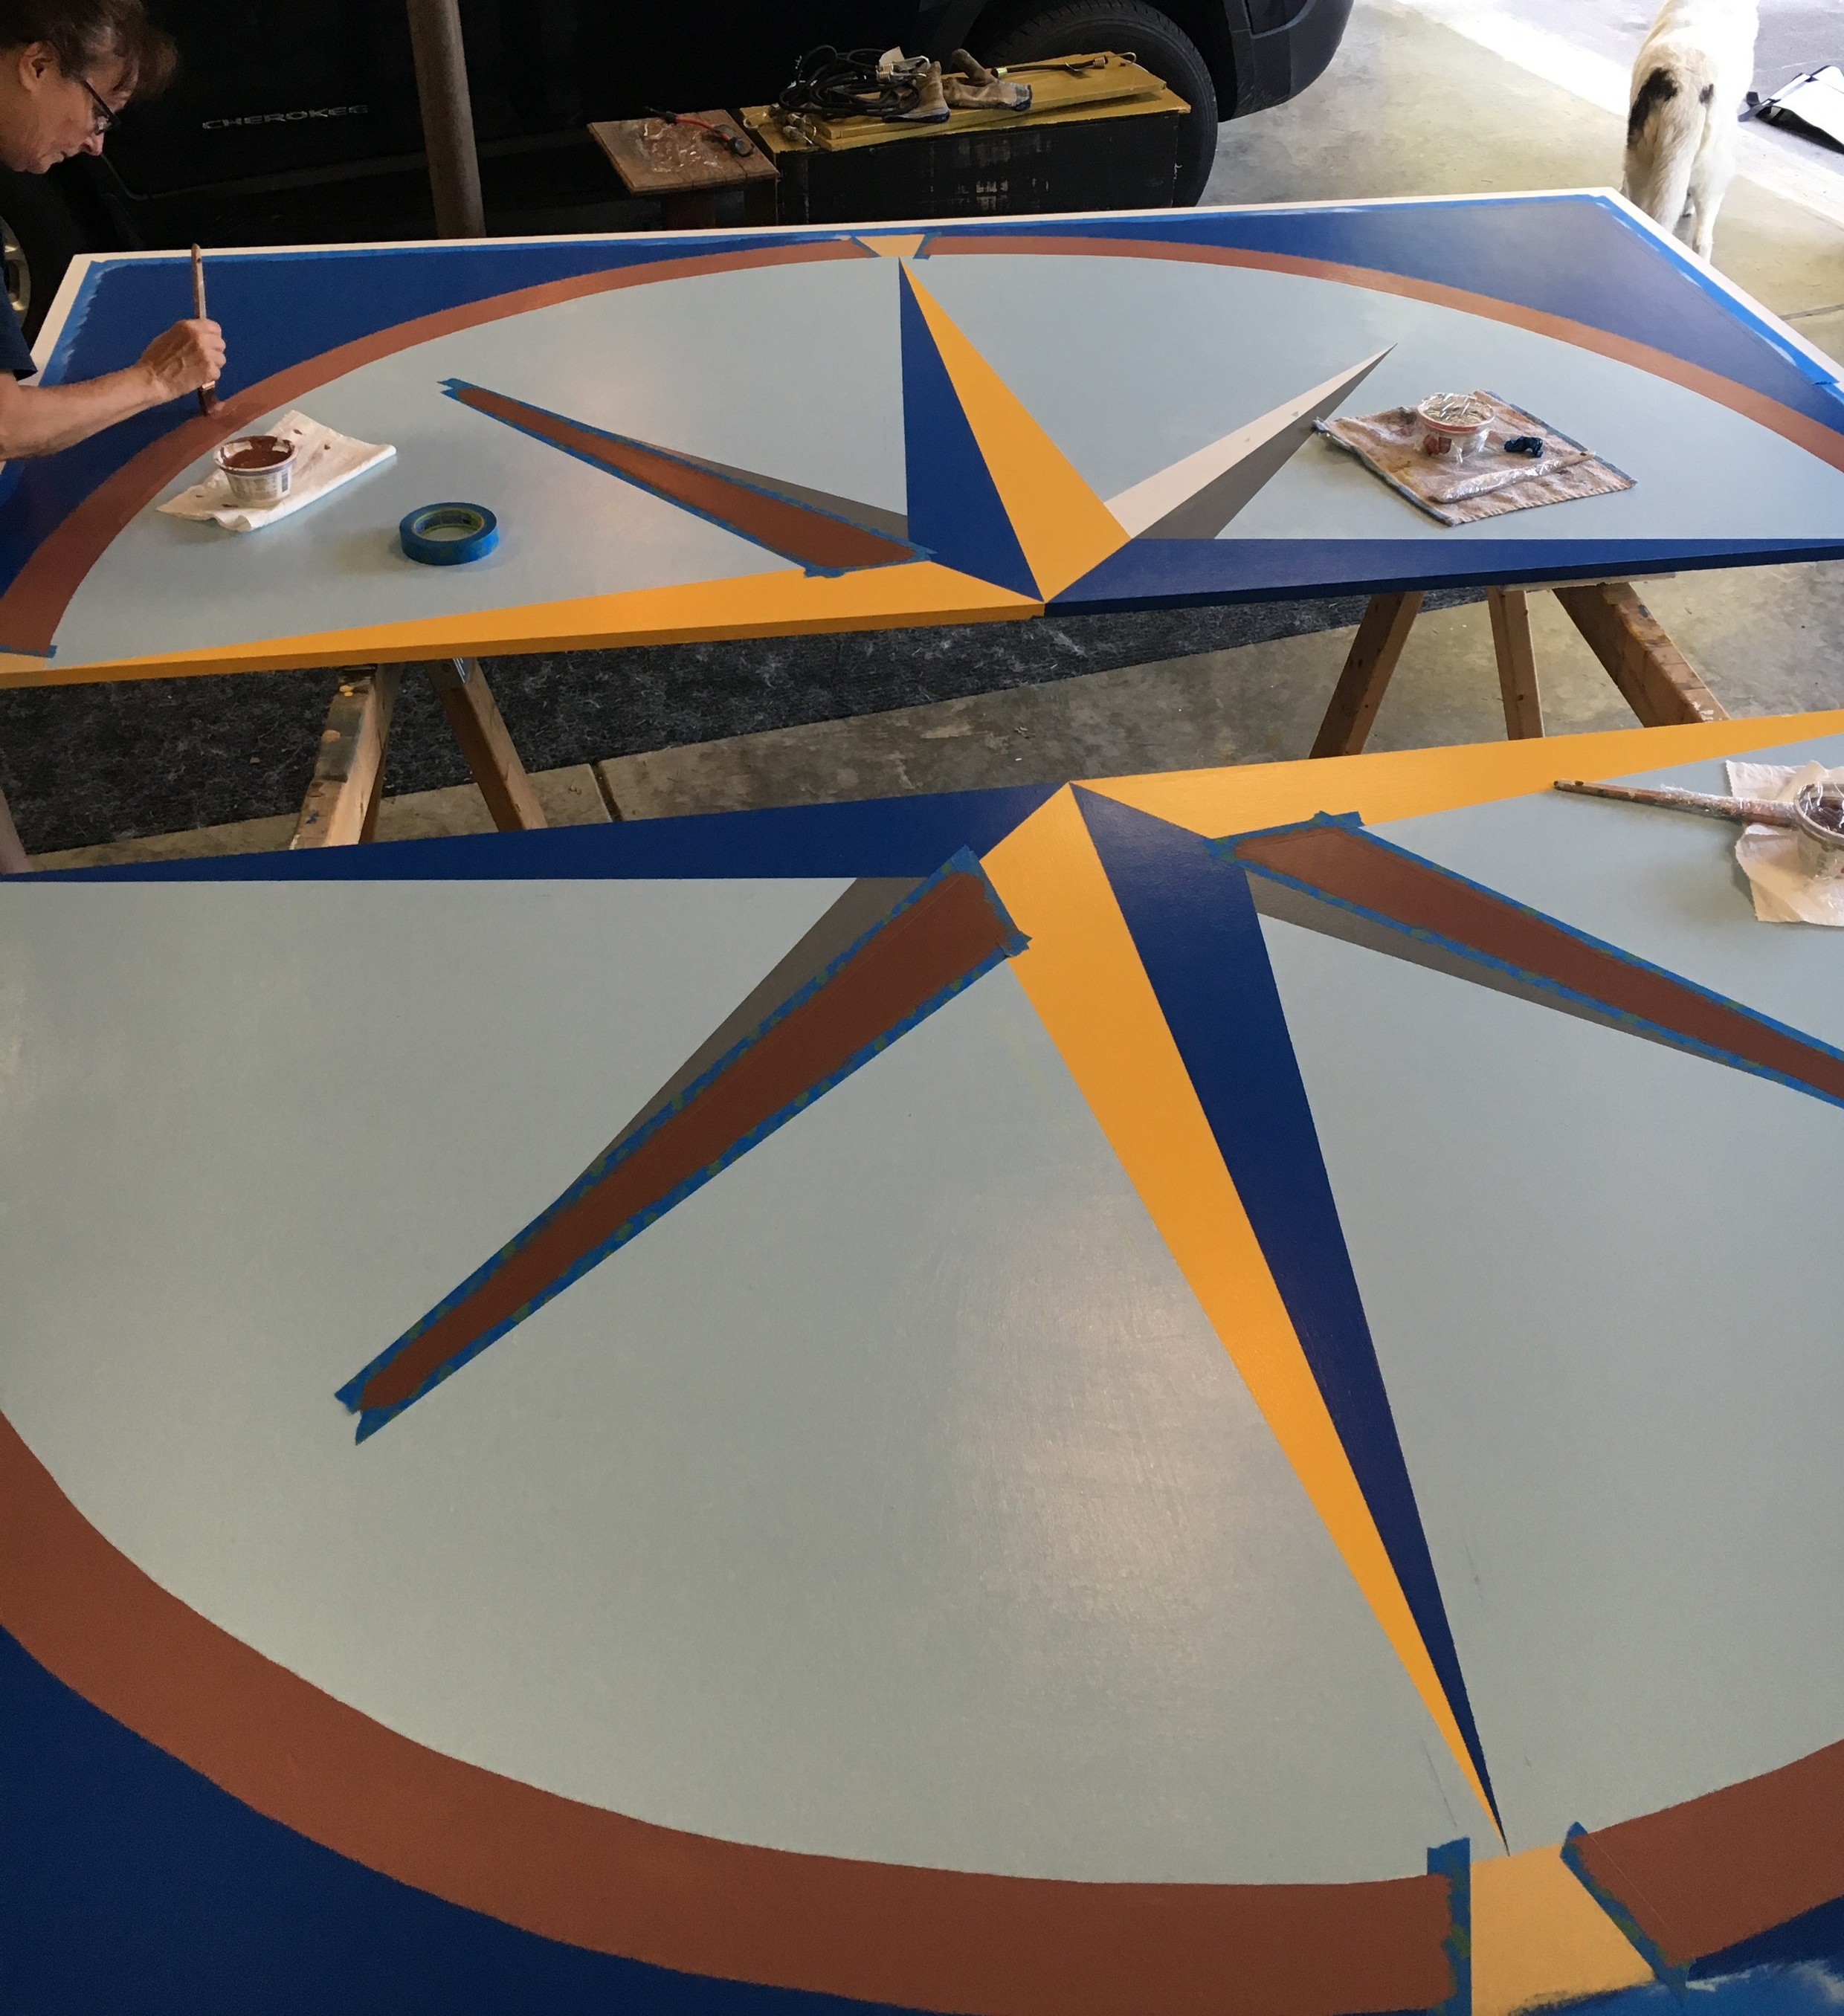 Final touches on the 8 footer Mariner's Compass